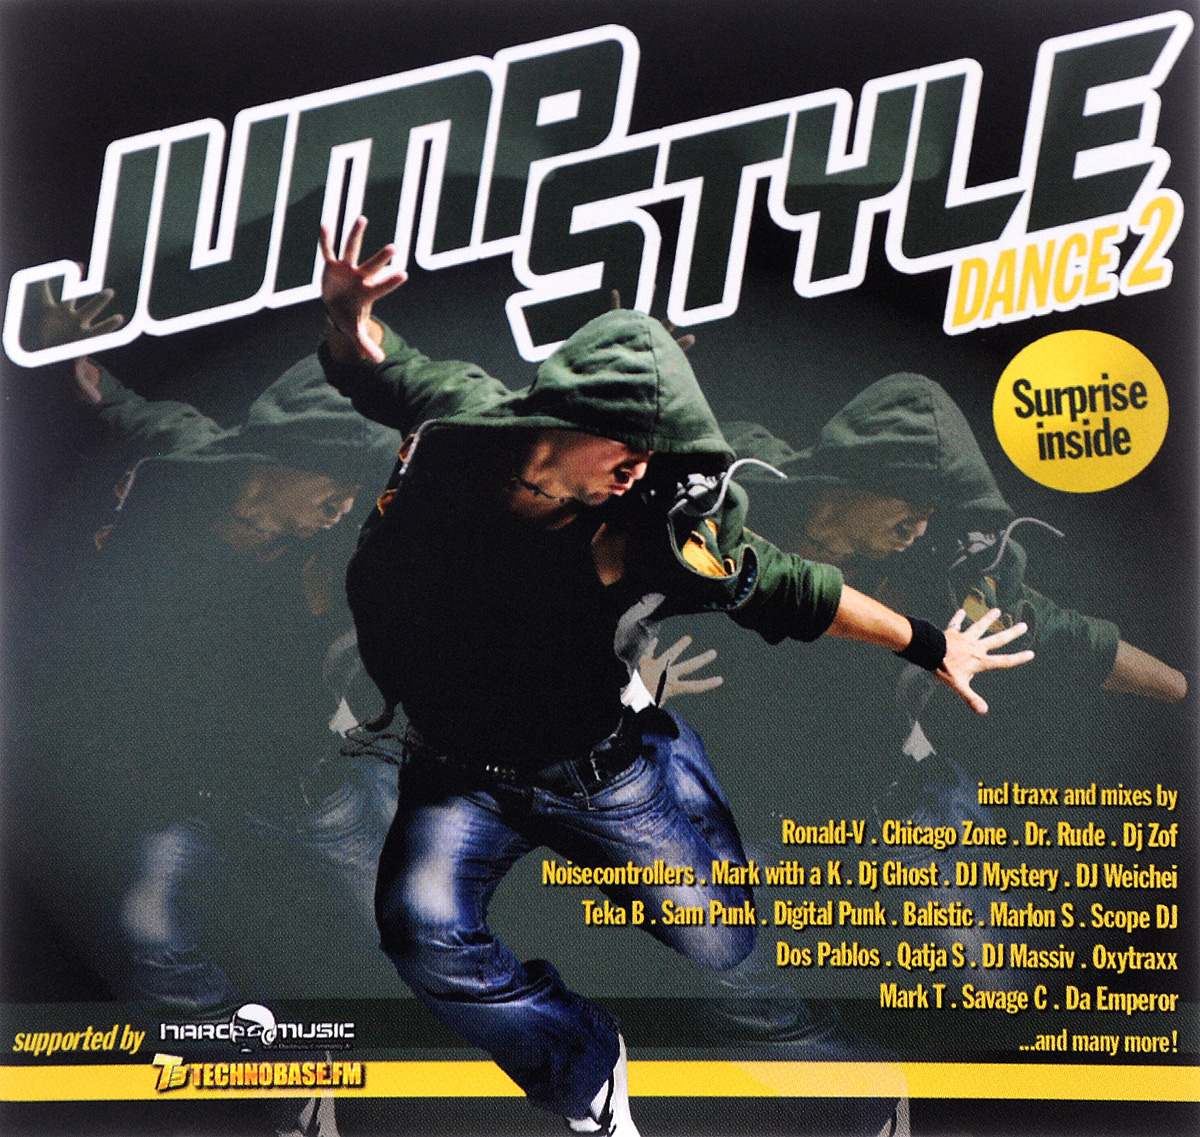 Da Emperor,Dany BPM,Demoniak,Digital Punk,DJ Ghost,Marlon,Noisecontrollers,DJ Massiv,The Carnaby,Jumperz Spirit,DJ Mystery,Comiccon,DJ Jones,DJ Yoeri,Mr Eyez,Savage,DJ Fenix,Chicago Zone,M-Bitious Jump Style. Dance 2 (2 CD) 6w led bola magica sonido mando a distancia dj shop dj efectos luces efectos luz sonido eventos fiestas 7 dmx512 canales